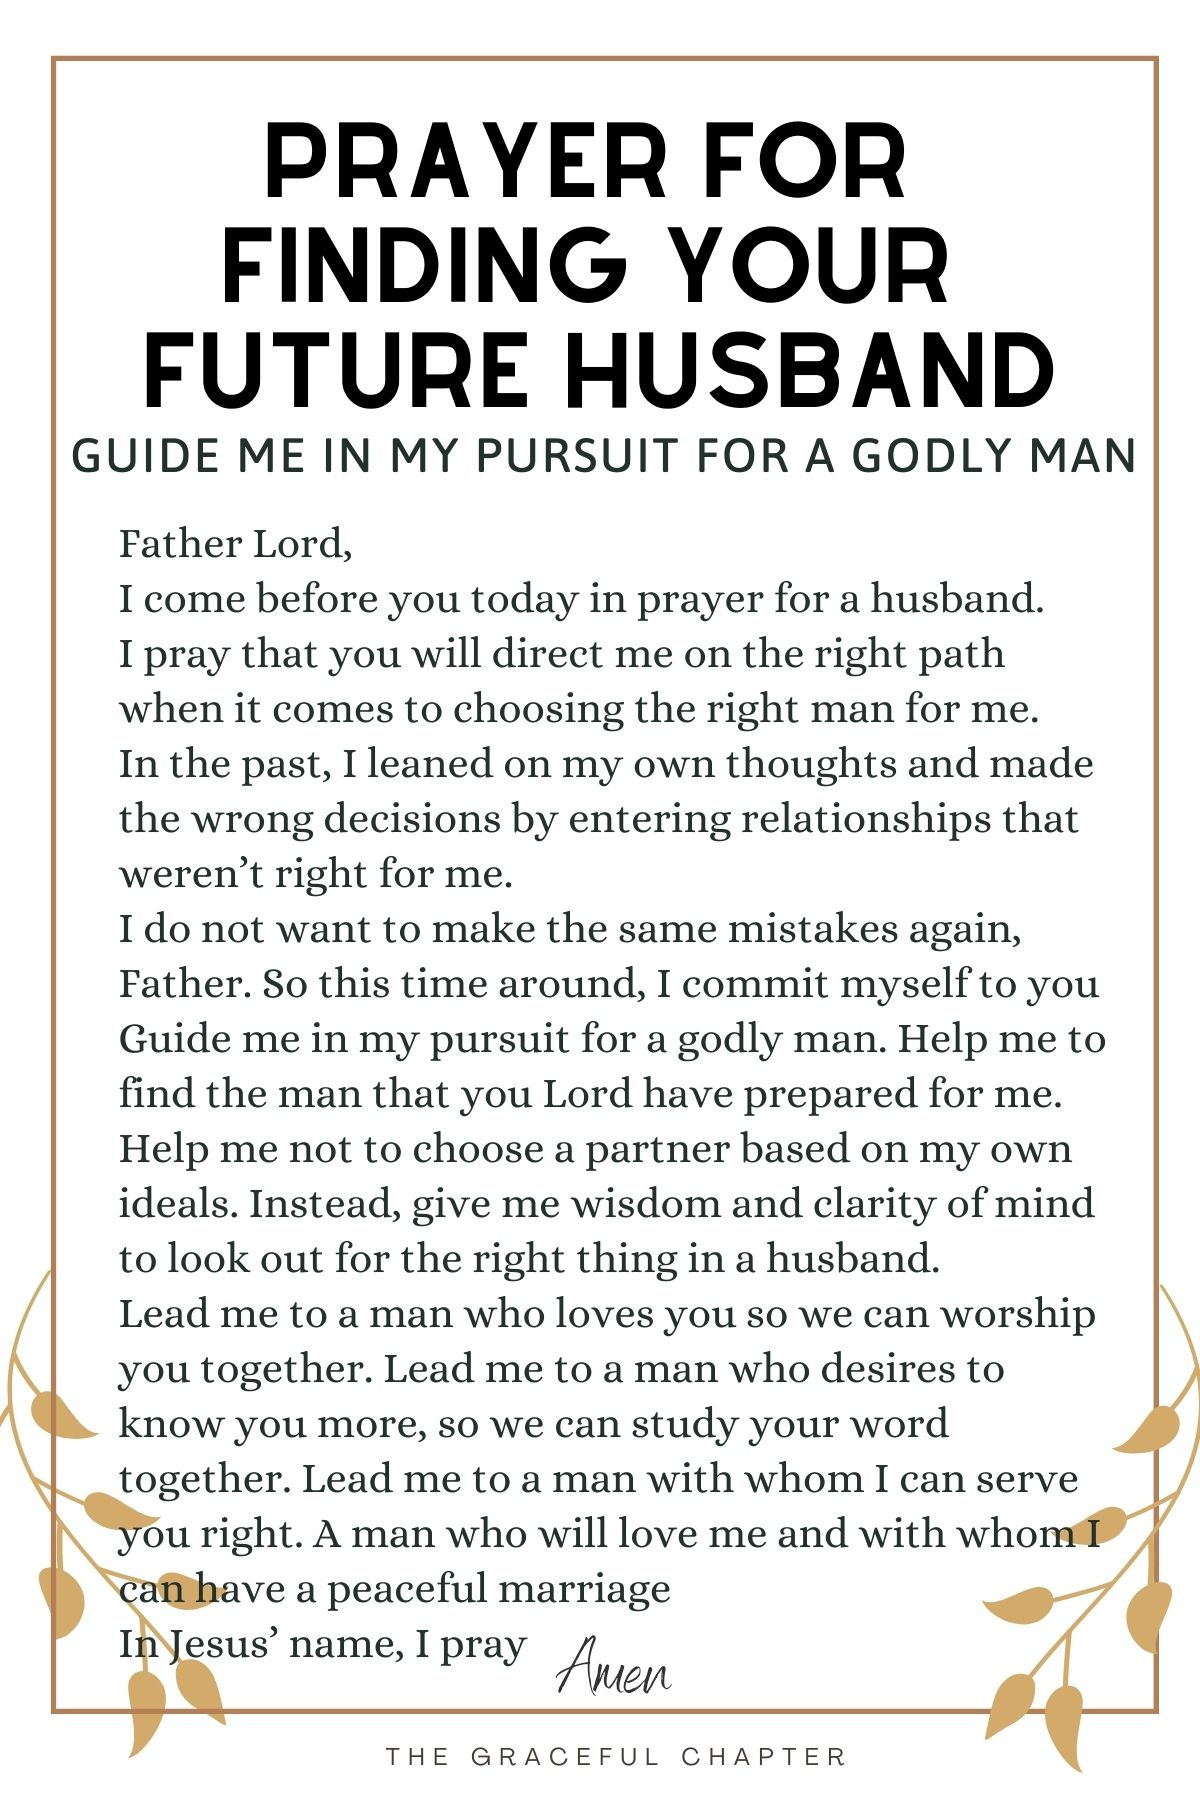 Guide me in my pursuit for a godly husband